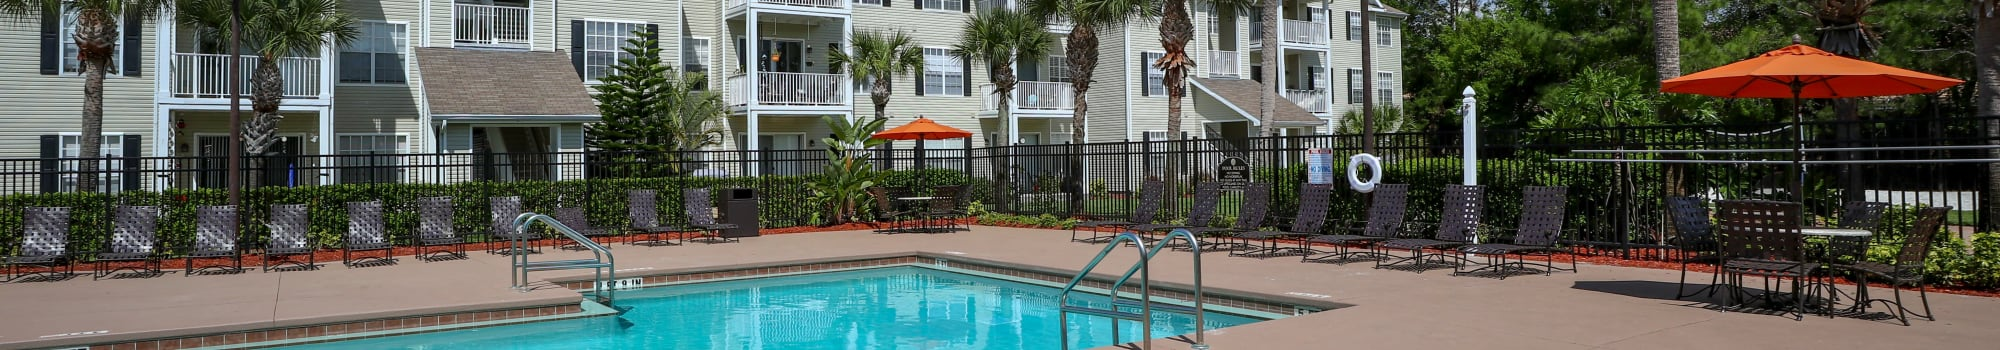 Pet friendly apartments in New Port Richey